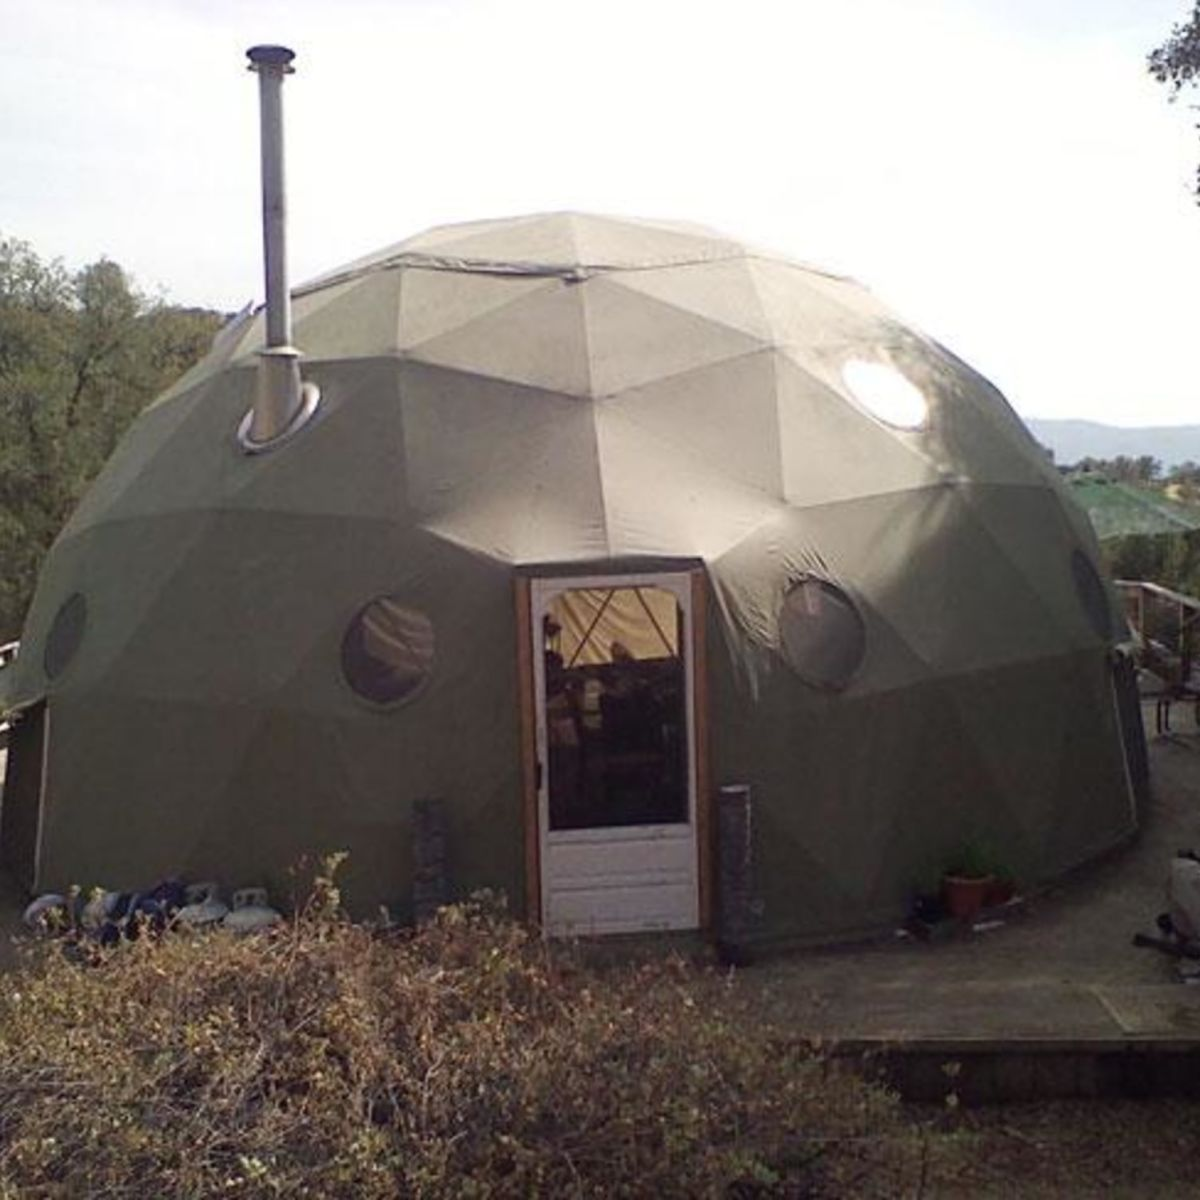 A Quick Collection Of Images Of Geodesic Domes: Tiny House For Sale In North Fork